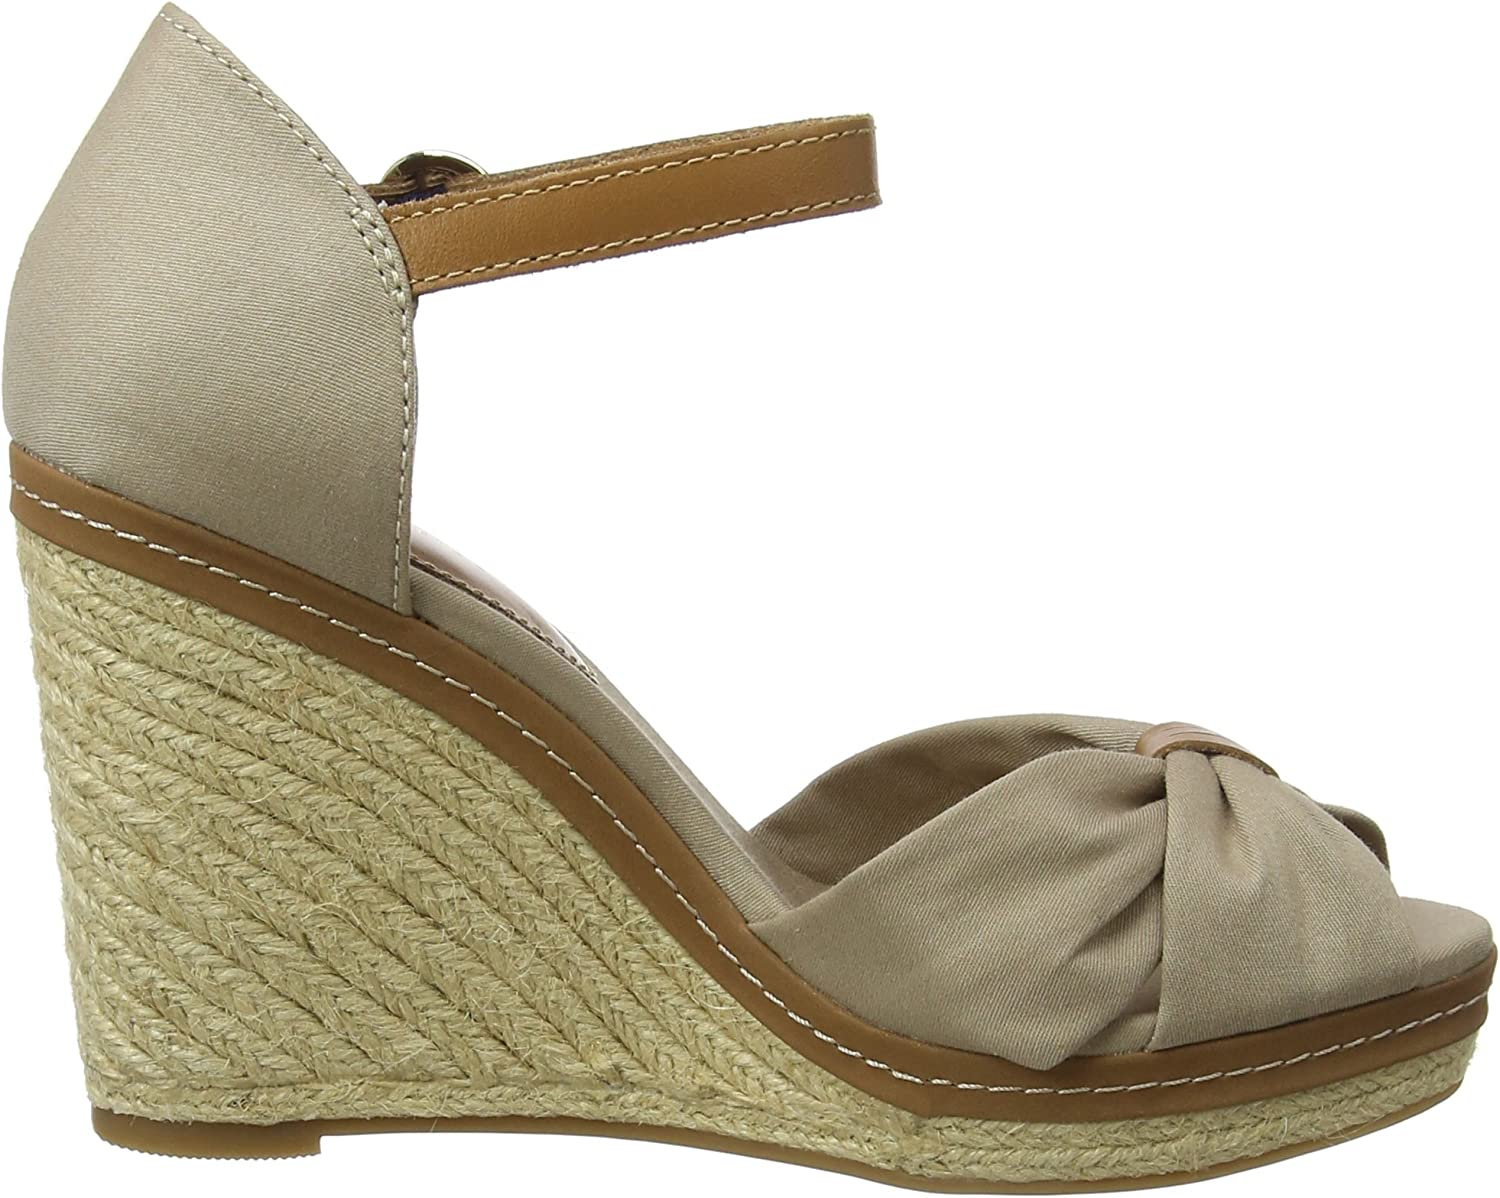 New Womens Tommy Hilfiger White Iconic Elba Coporate Ribbon Canvas Sandals